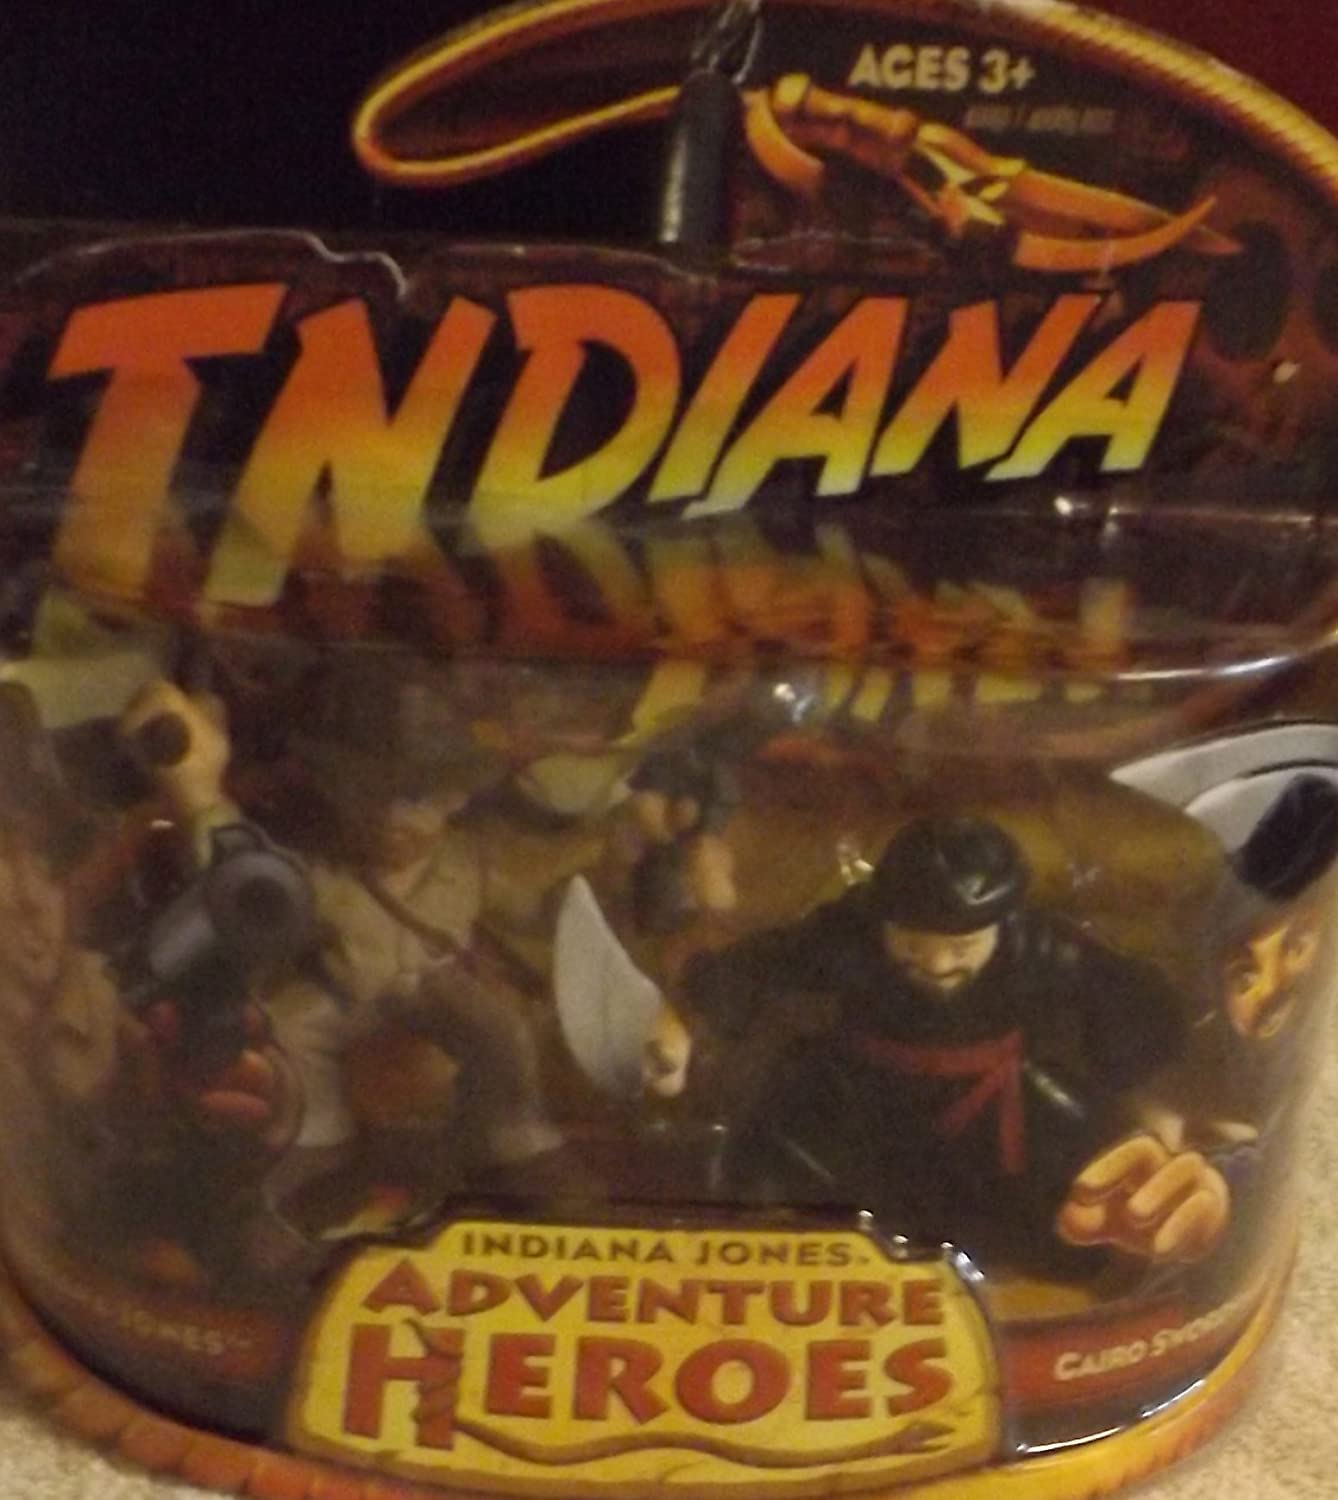 Indiana Jones and amp; Cairo Swordsman Adventure Heroes by: Amazon.es: Juguetes y juegos